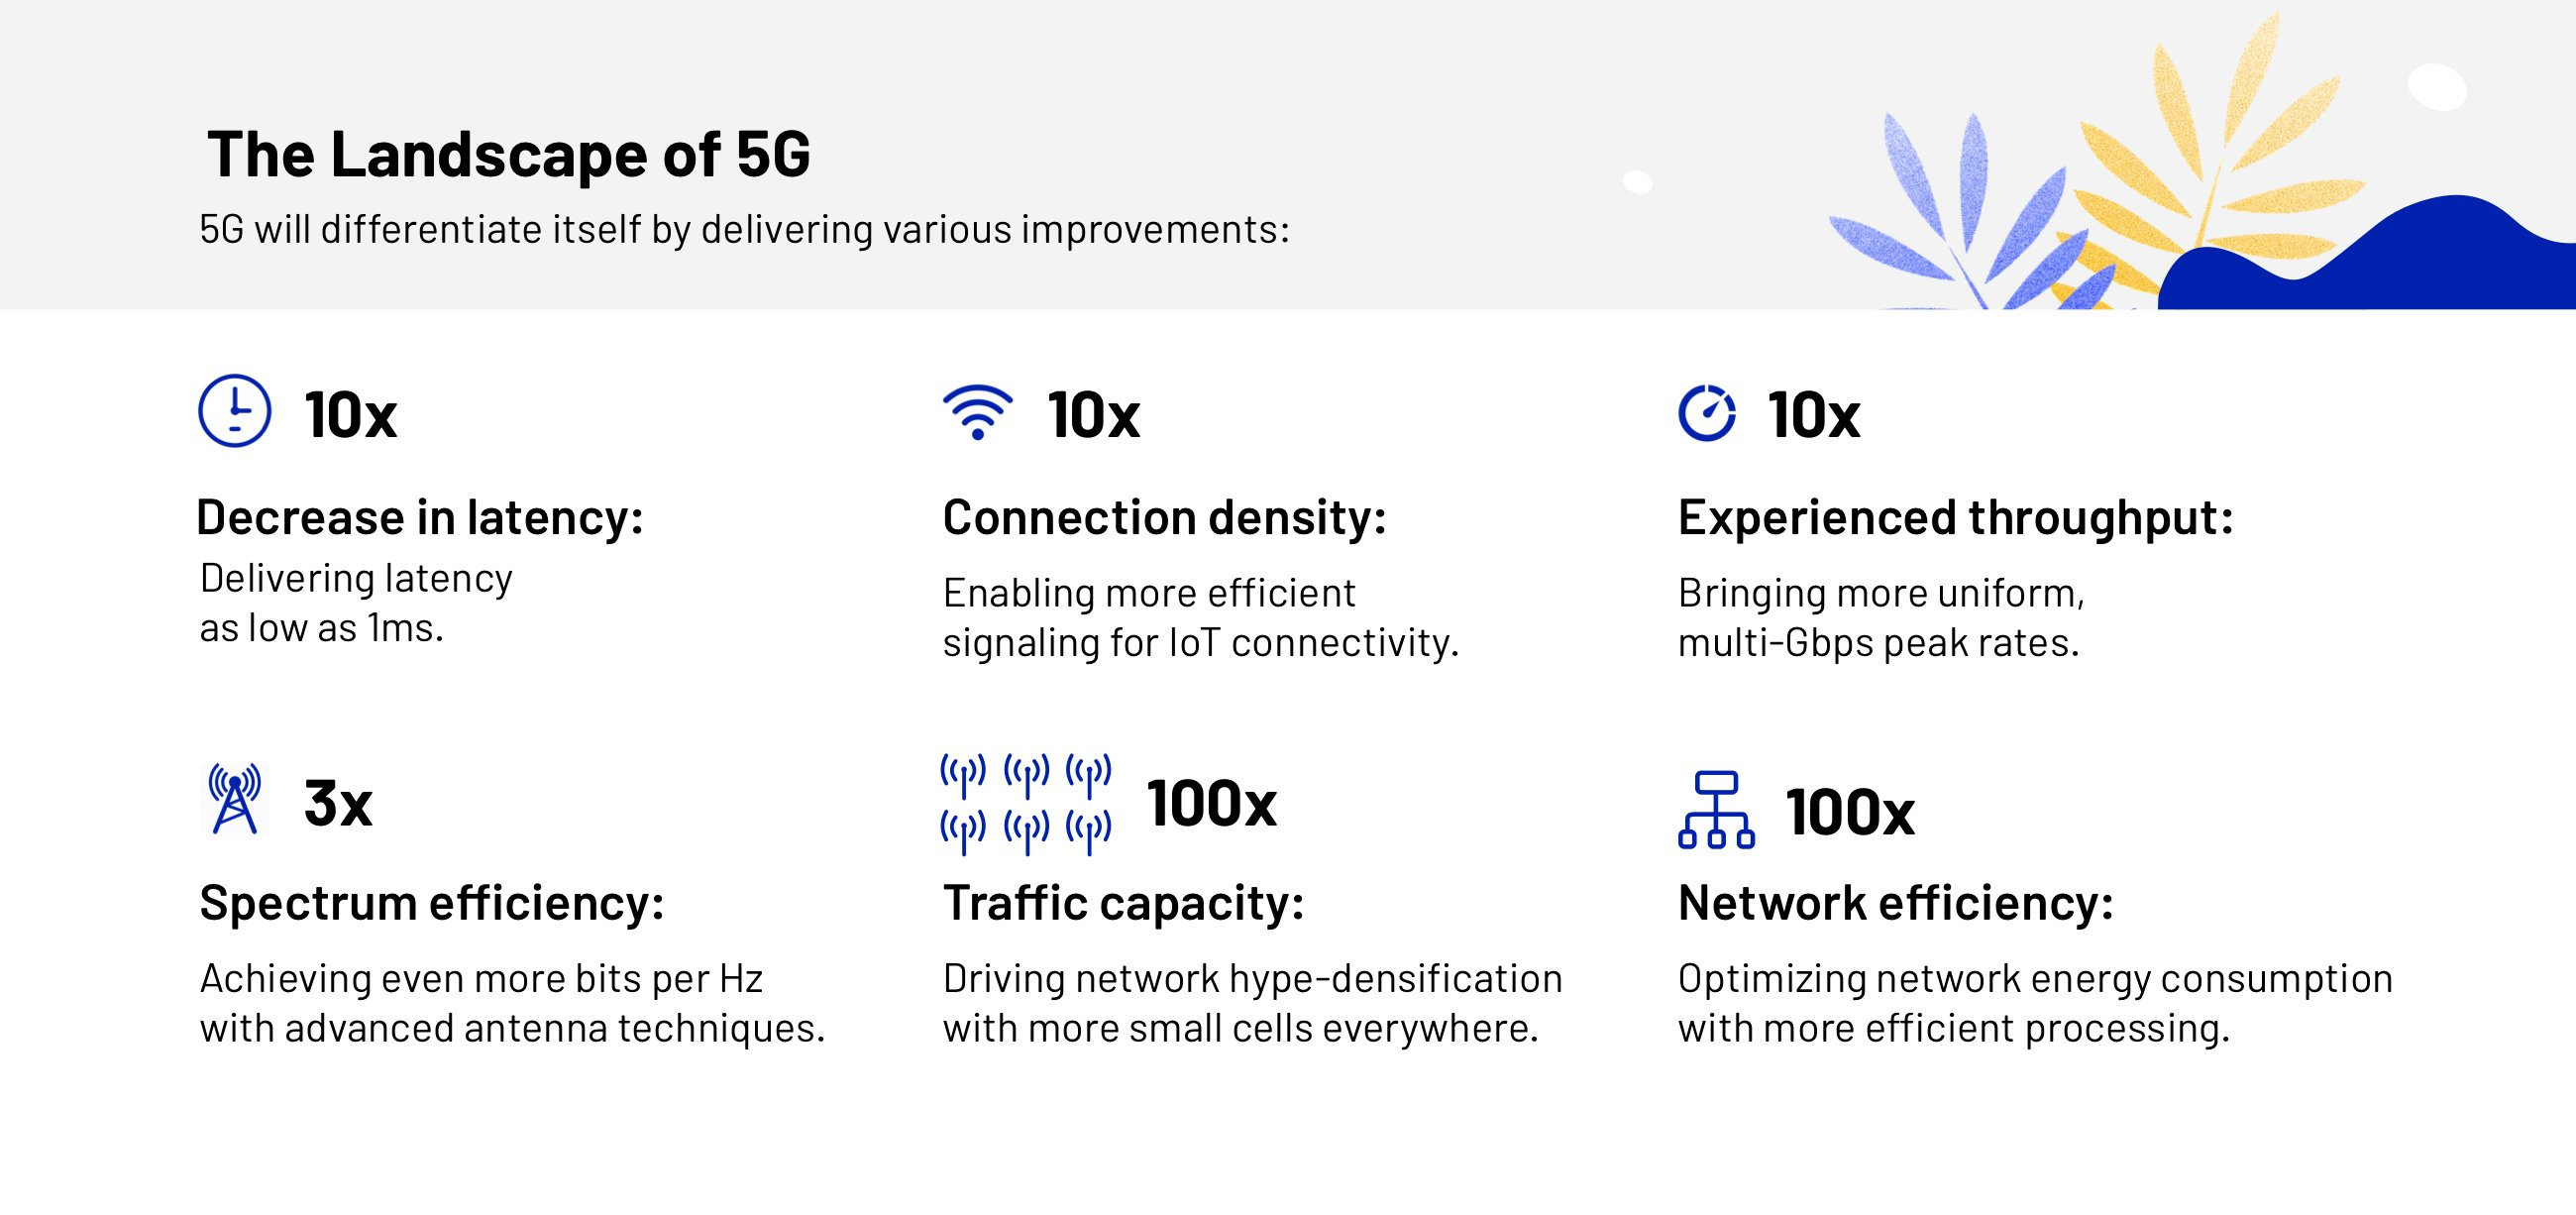 The main features of 5G mobile network that could impact the way we design products in the future.